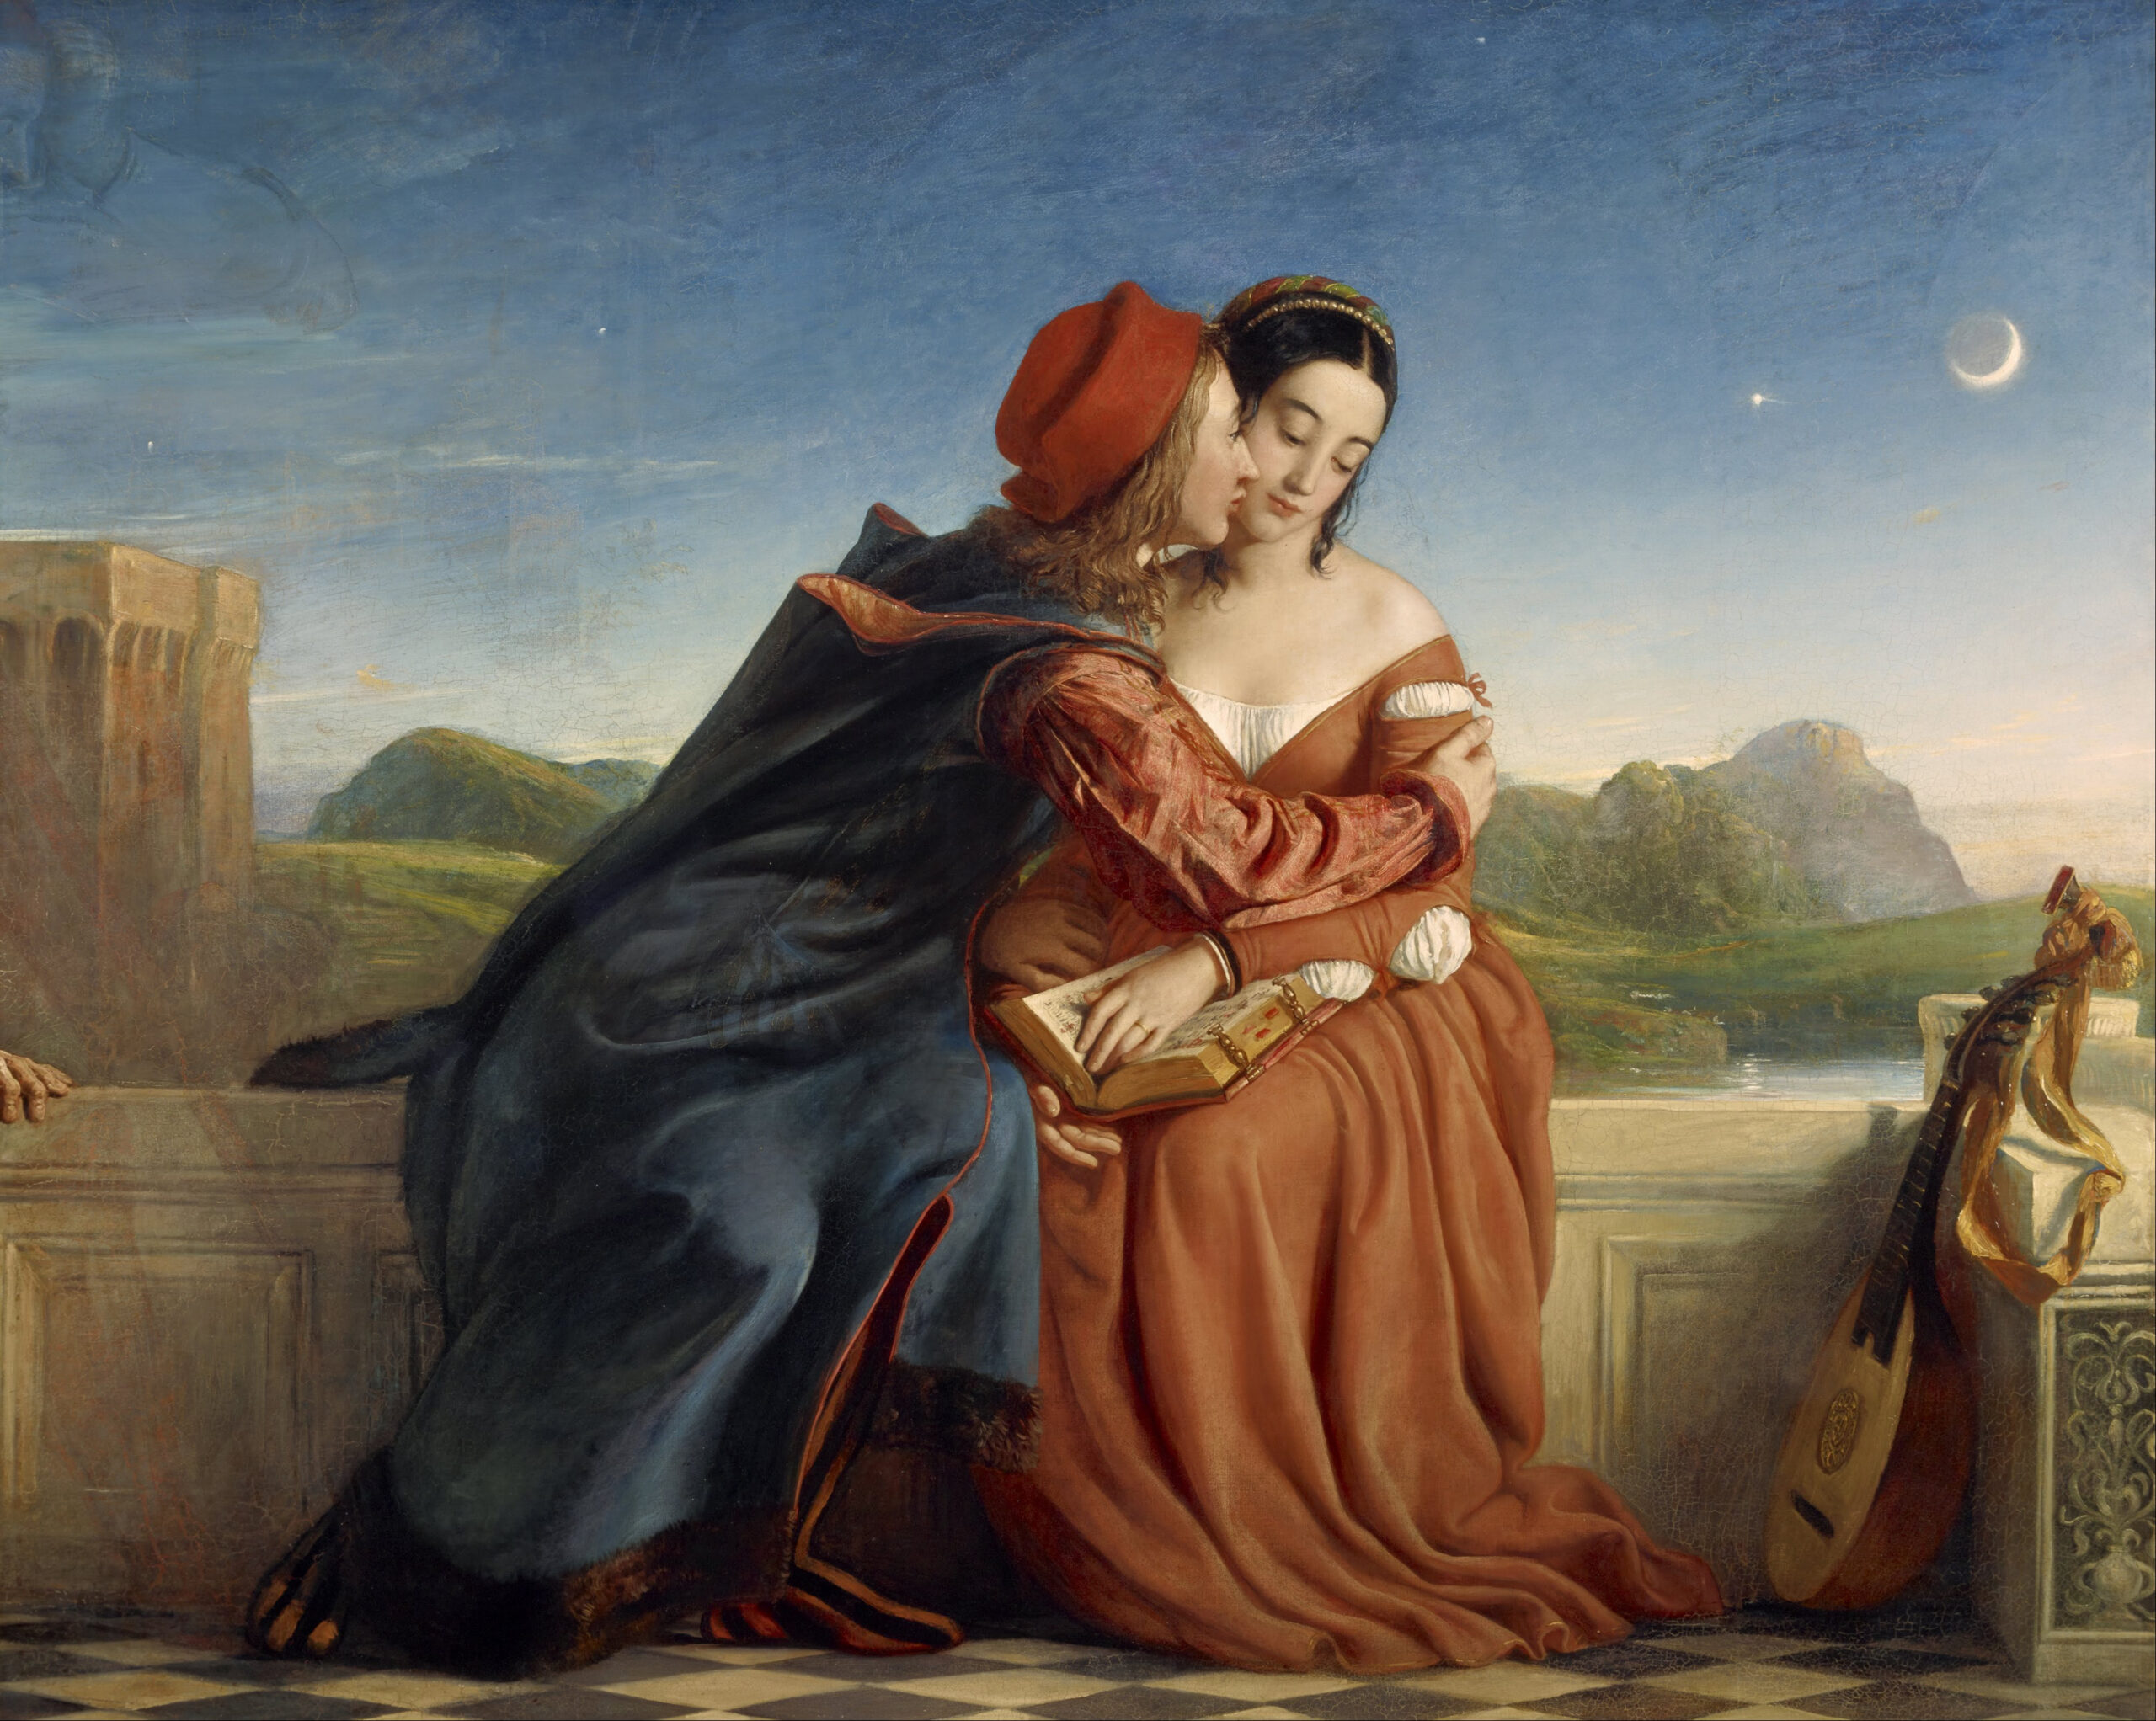 William Dyce, Paolo e Francesca